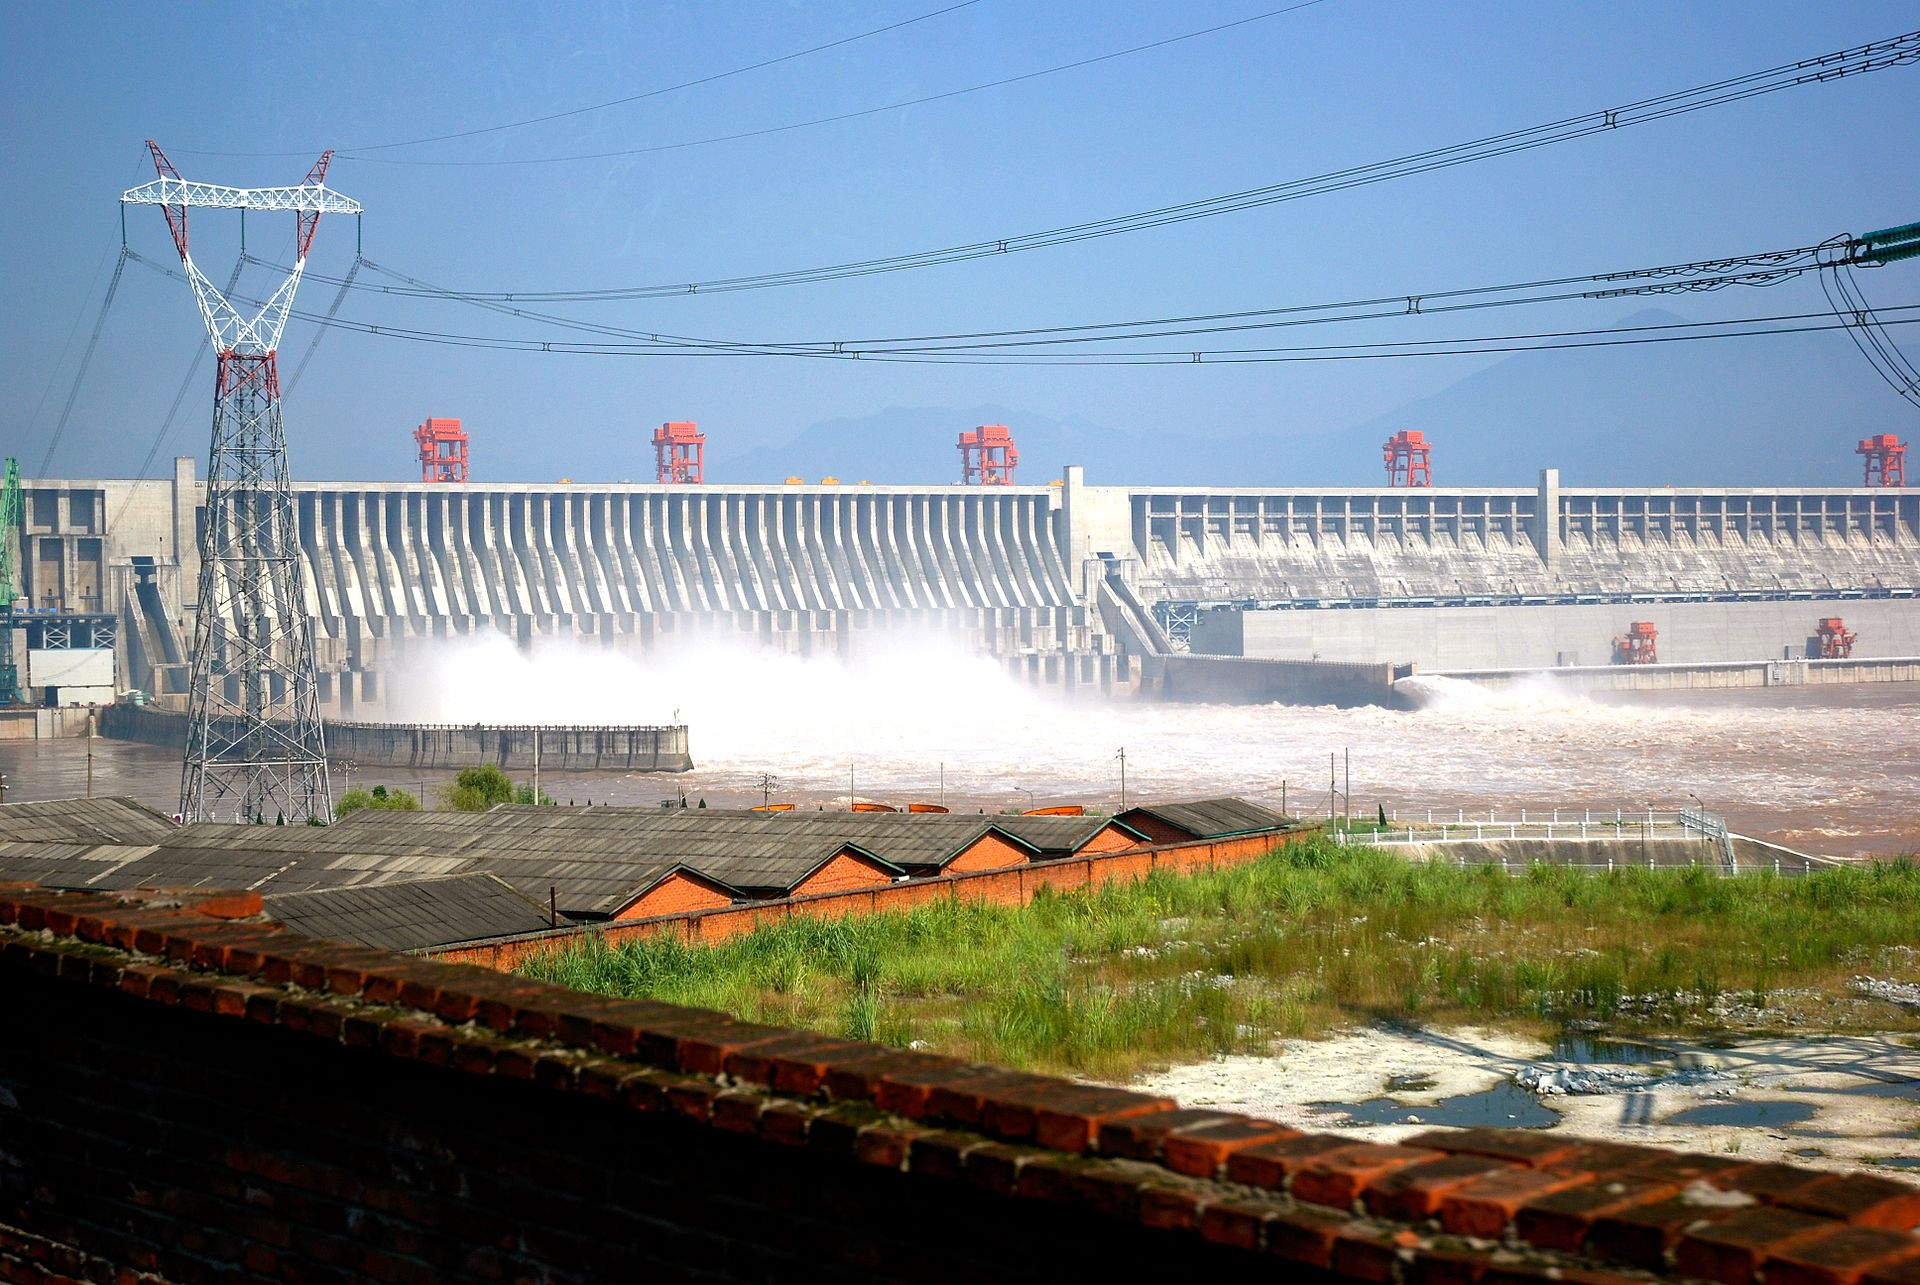 the gorges dam The three gorges dam, situated in the yichang, nearby the xiling gorge, is the biggest dam in china and the world's largest hydroelectric station for the usage of the flood control and power generation.